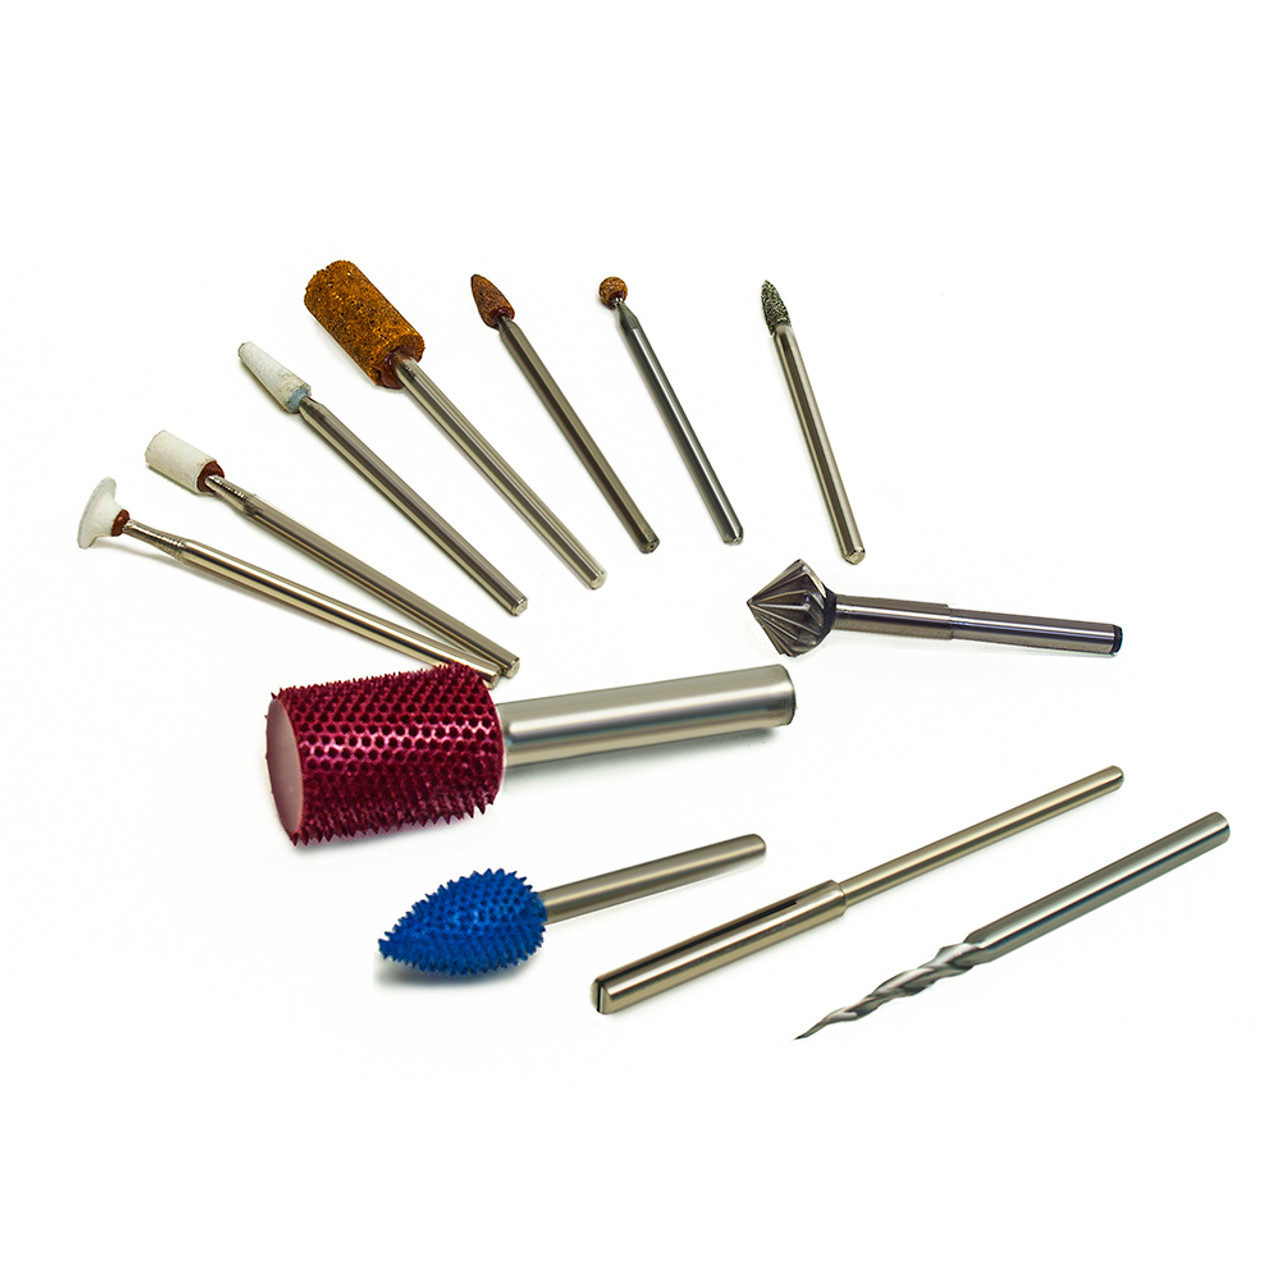 Accessories kit included (please note the bits included an vary and be replaced with similar items)